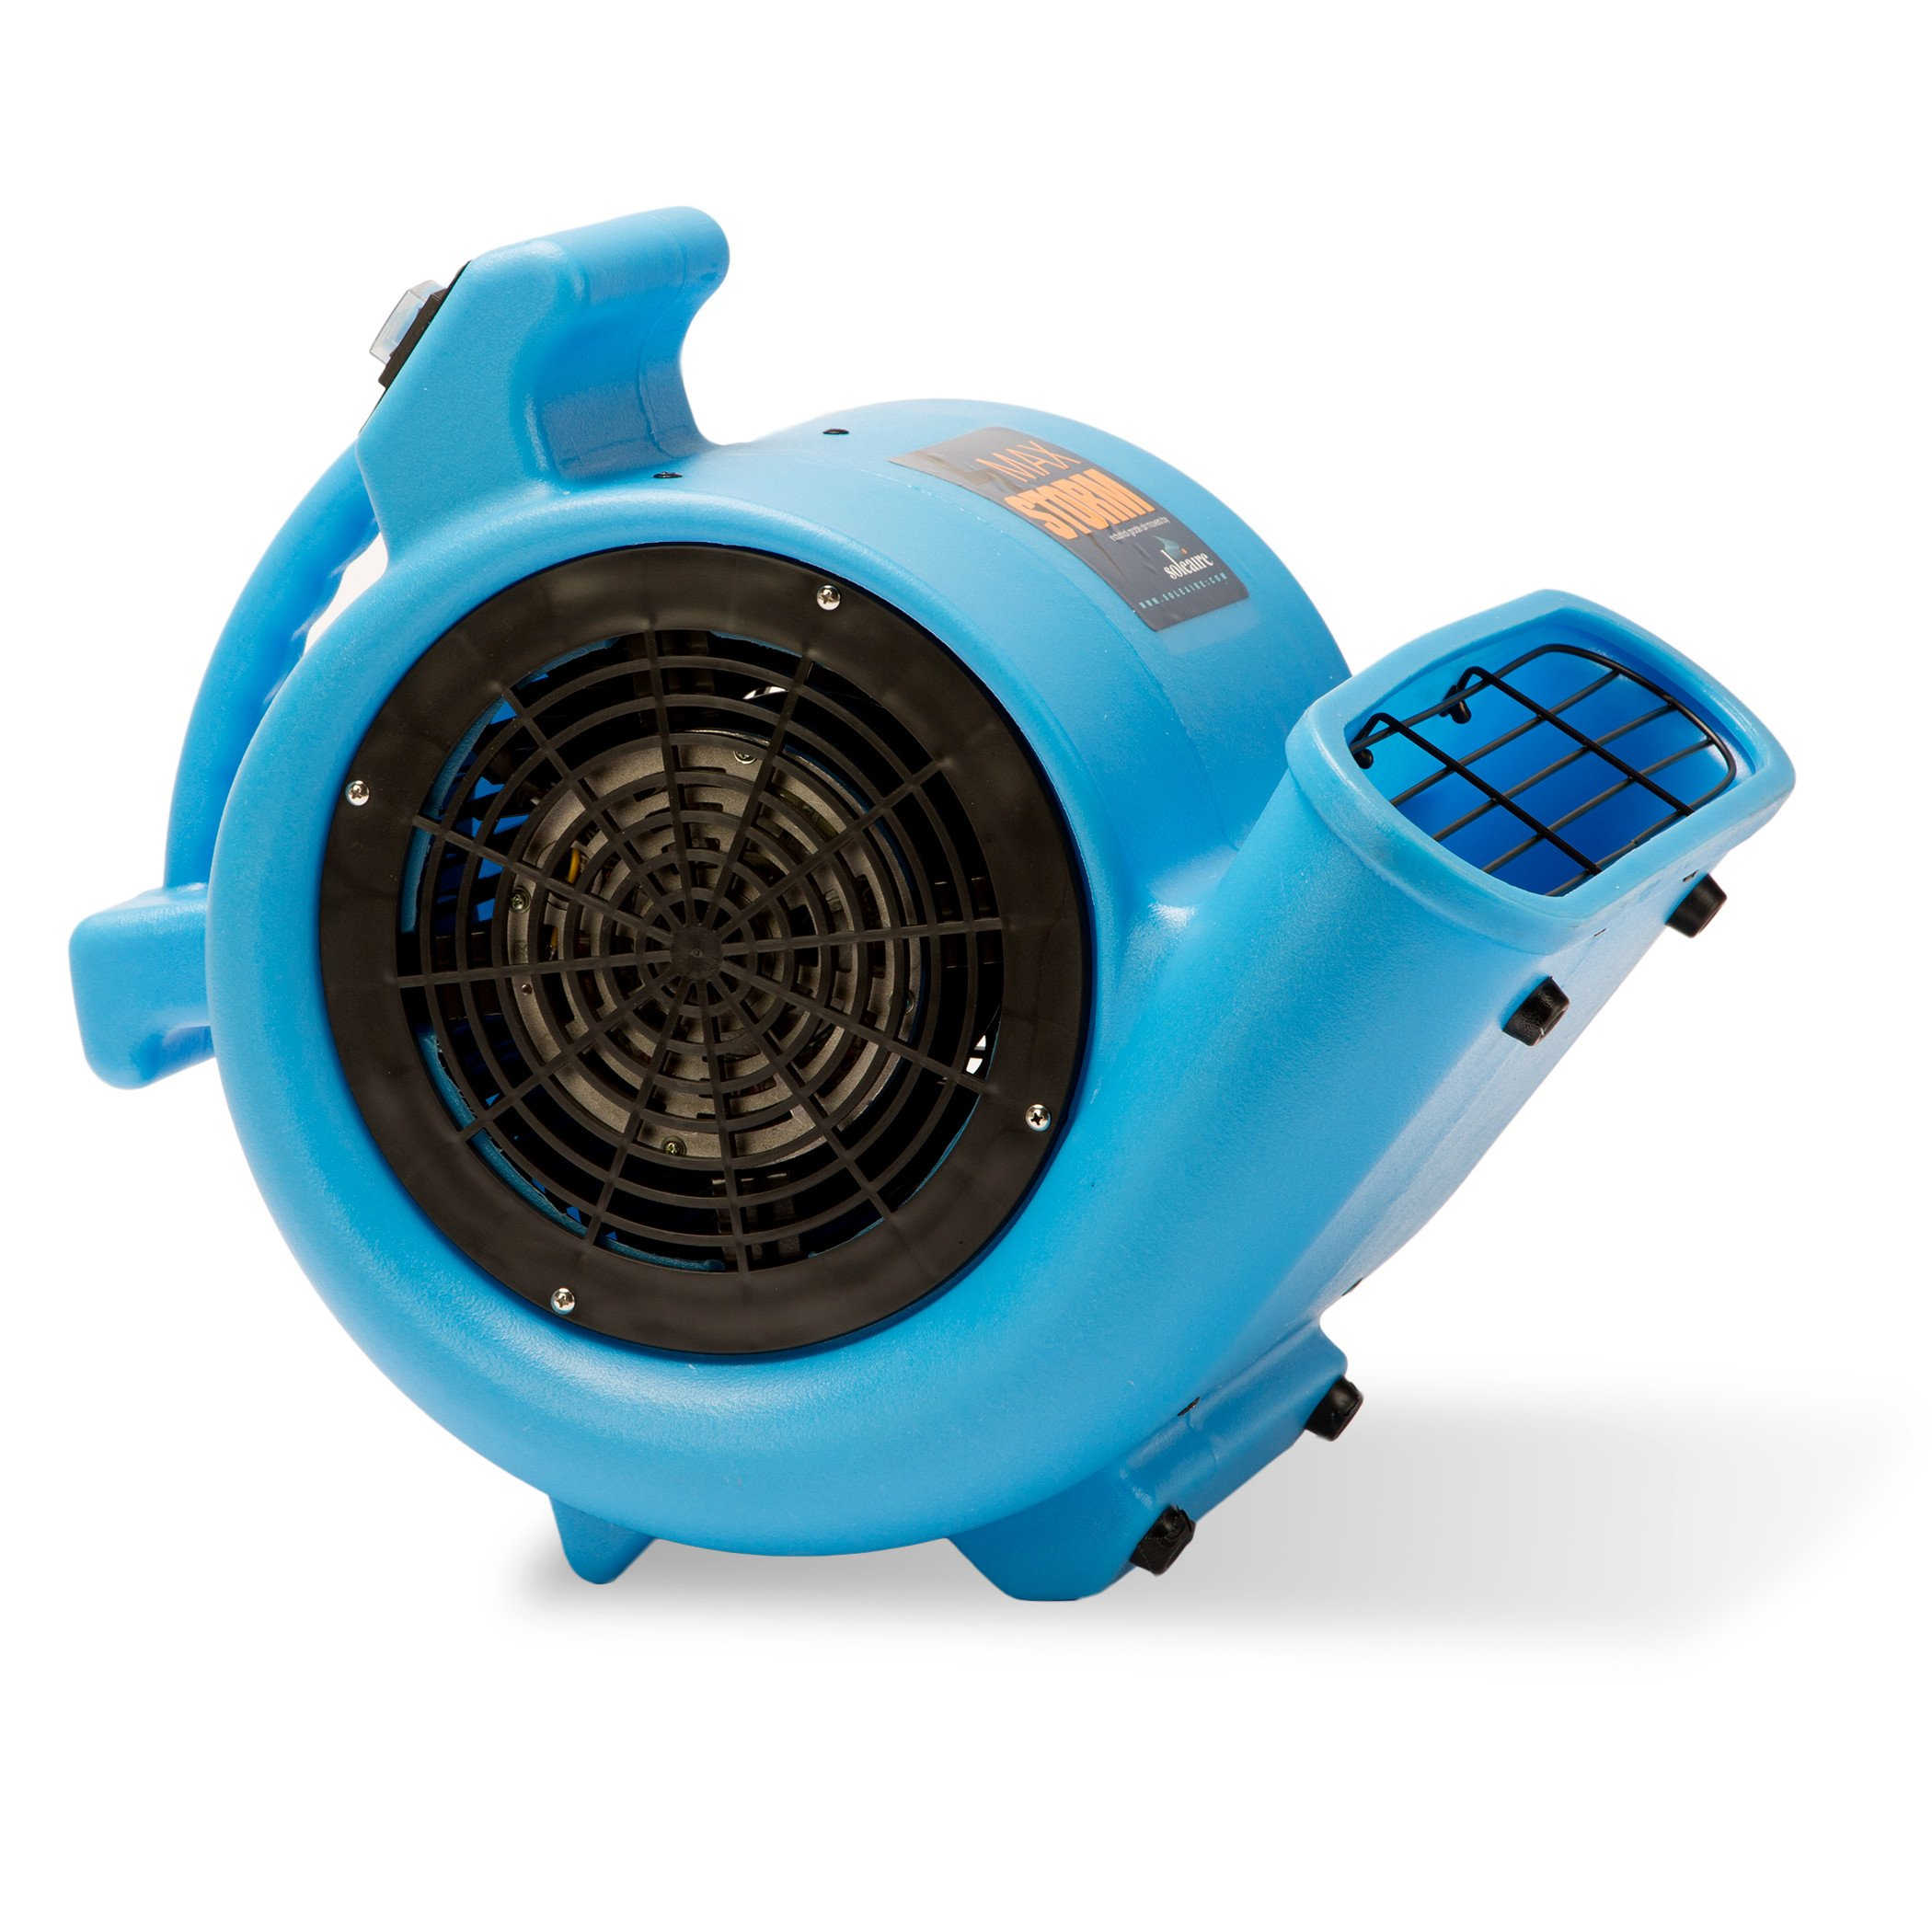 Max Storm 1/2 HP Durable Lightweight Air Mover Carpet Dryer Blower Floor Fan for Pro Janitorial, Blue by Soleaire (Image #3)